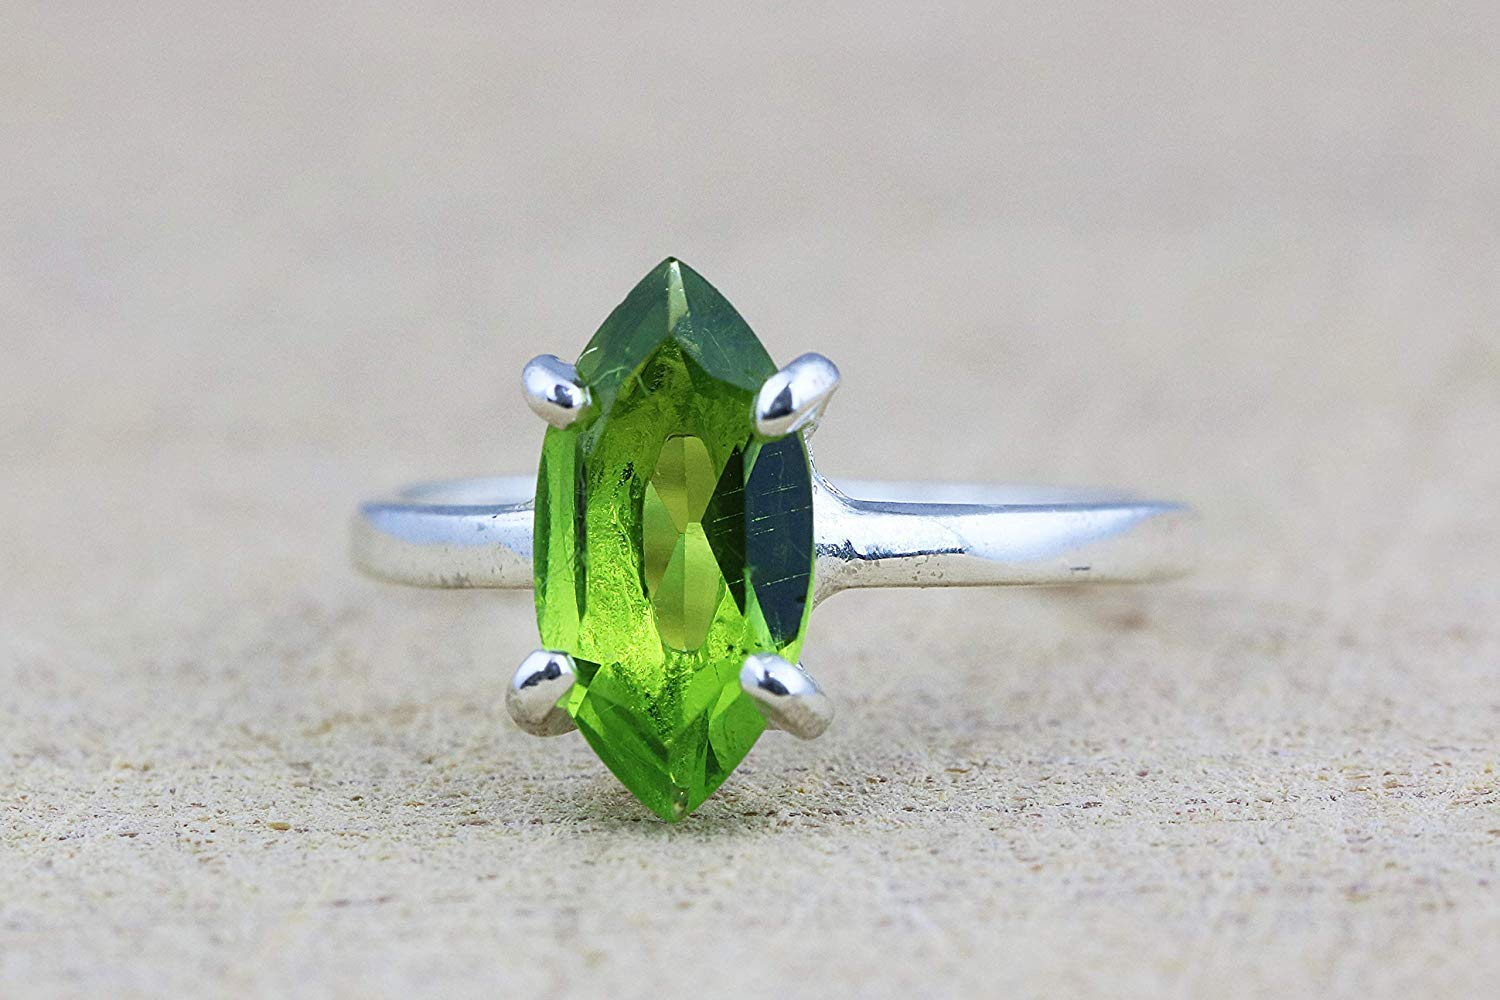 ba1066477 Get Quotations · Peridot ring,August birthstone ring,silver rings,stack  rings,prong rings,